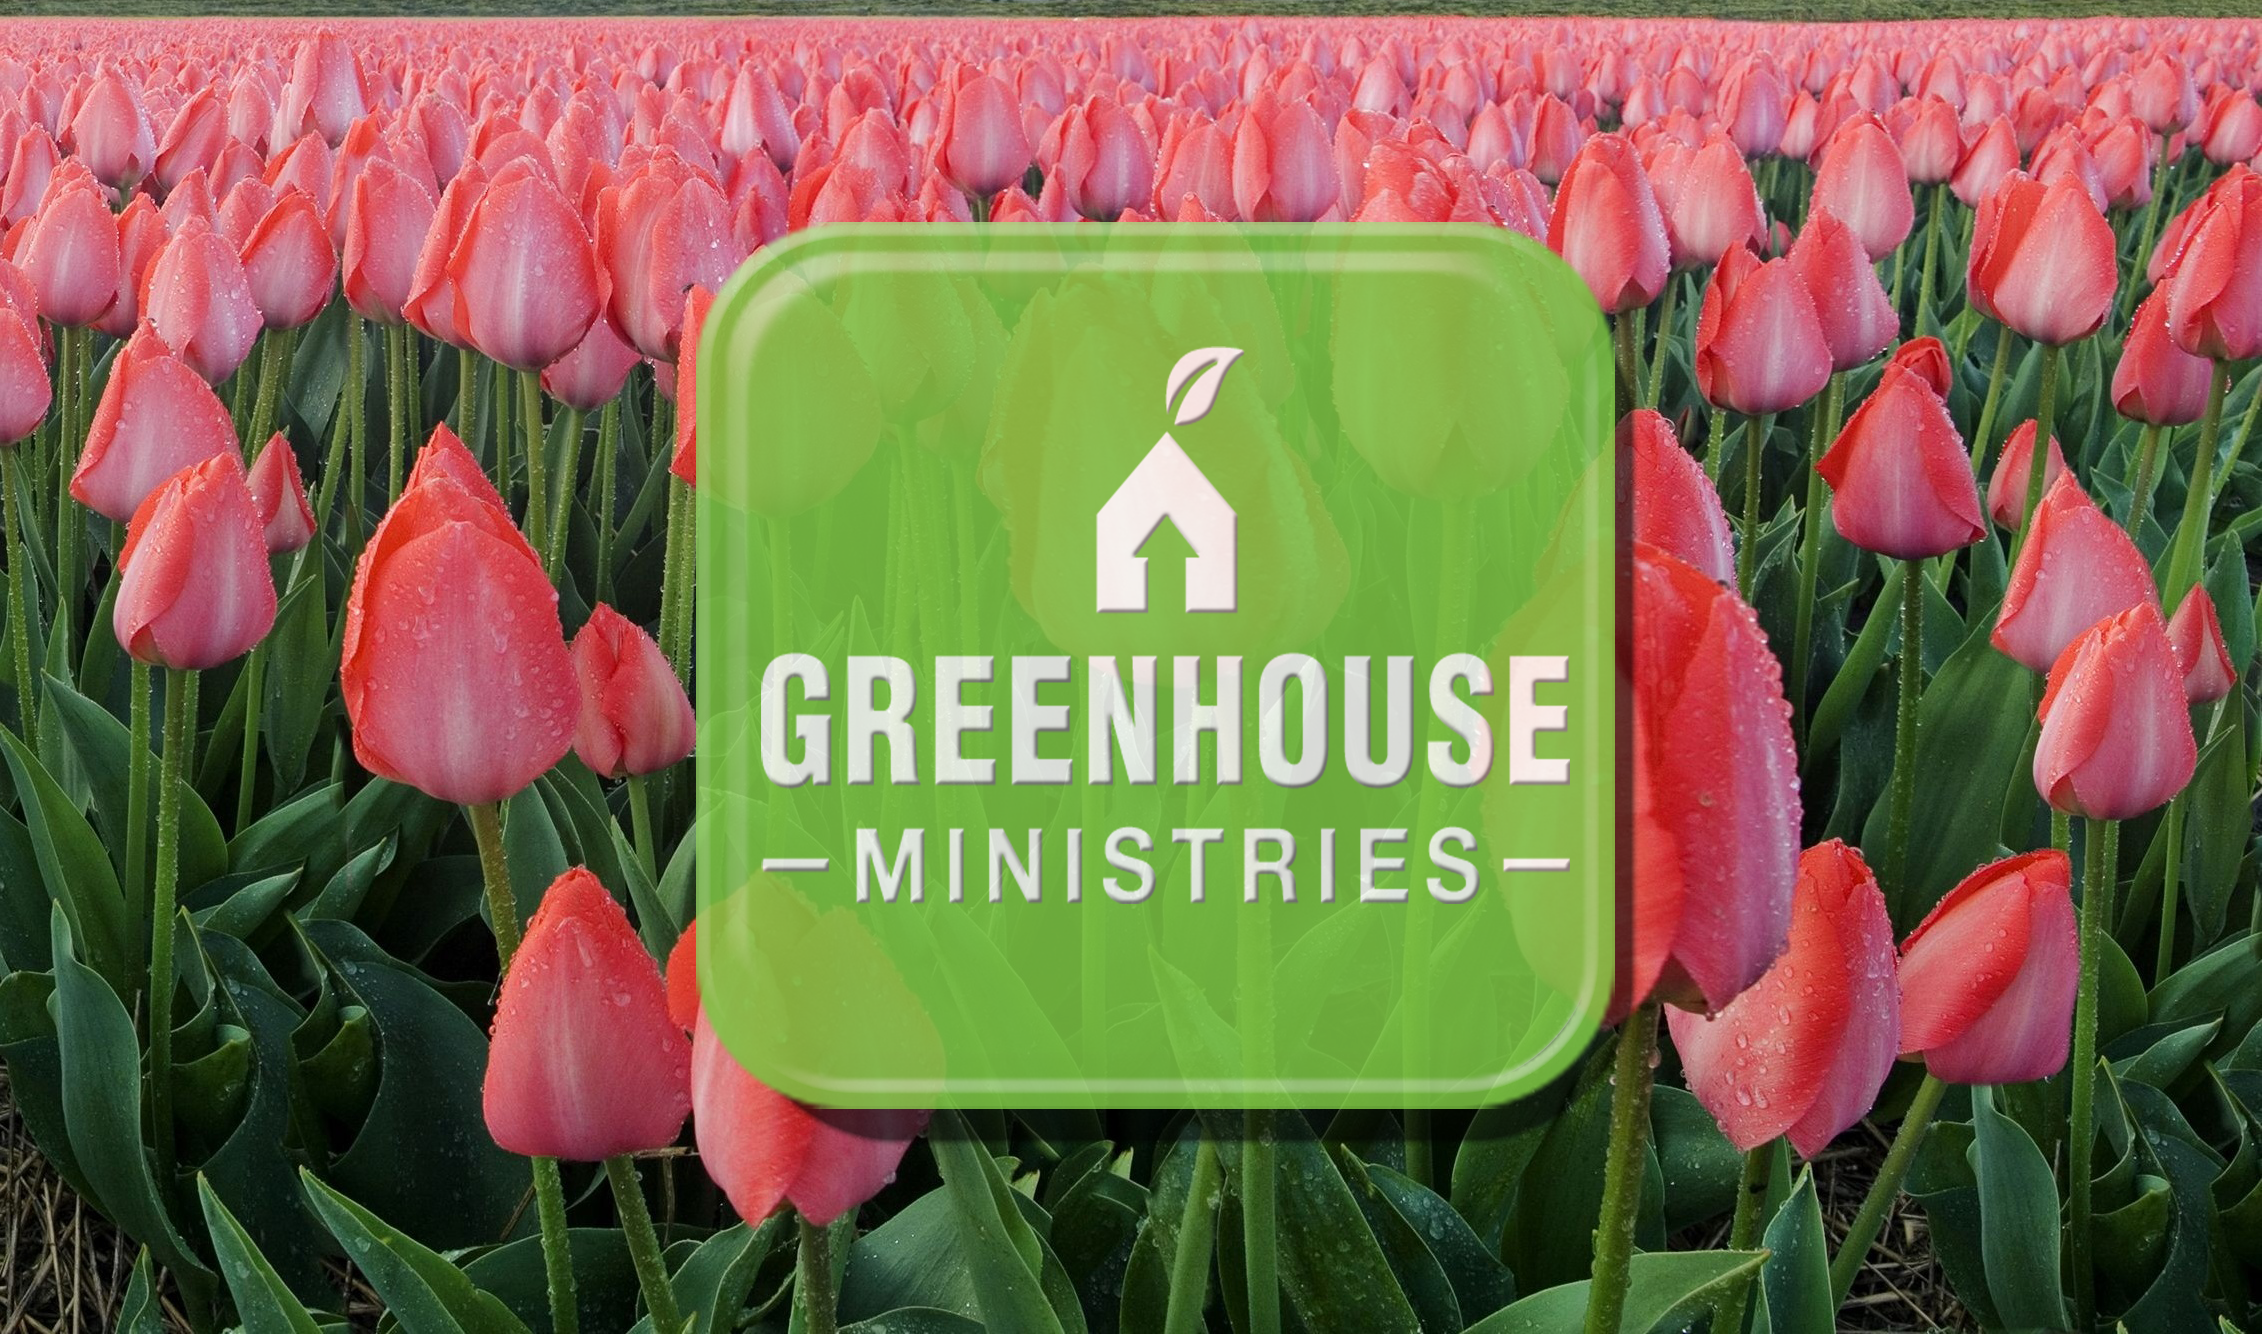 20th Anniversary for Greenhouse Ministries